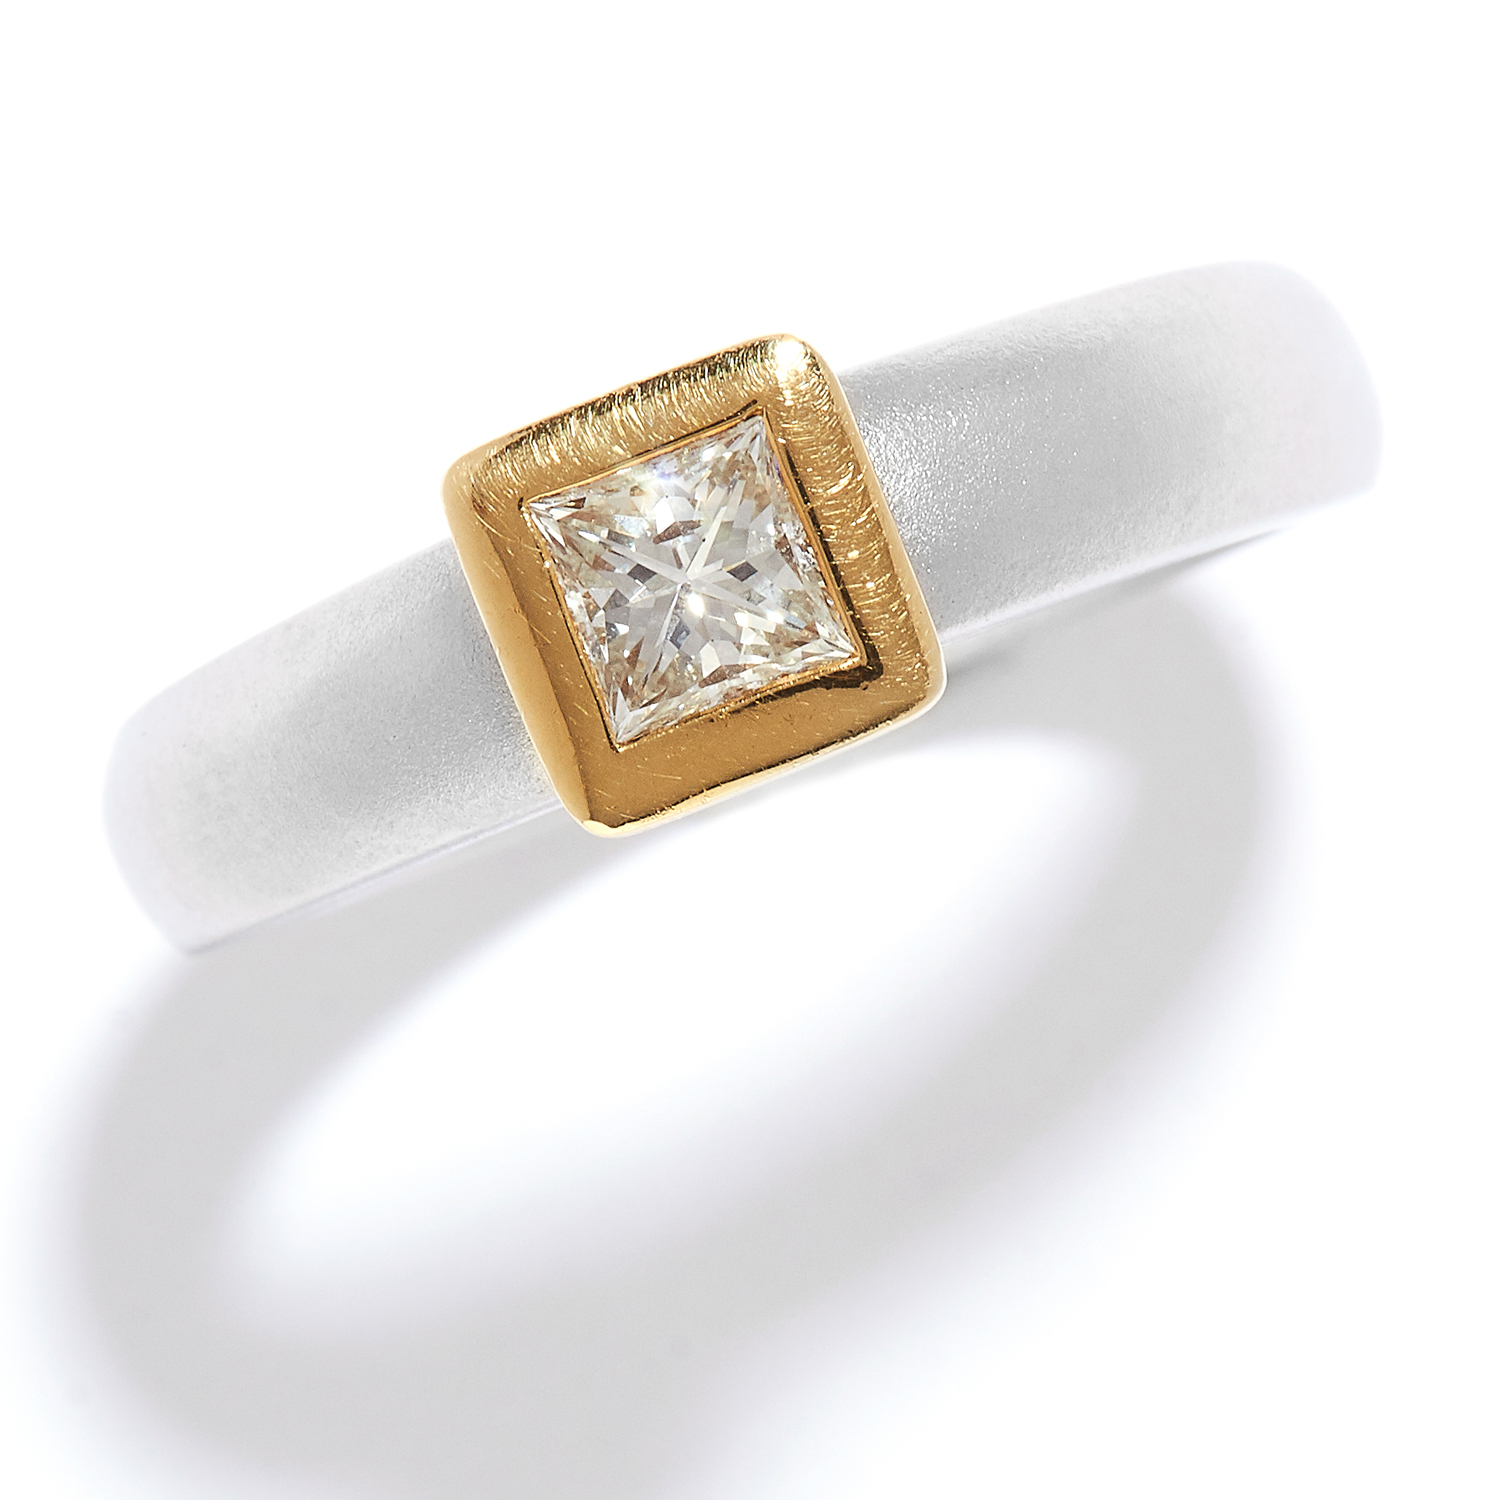 SOLITAIRE DIAMOND ENGAGEMENT RING in 18ct yellow gold and platinum, the princess cut diamond in a